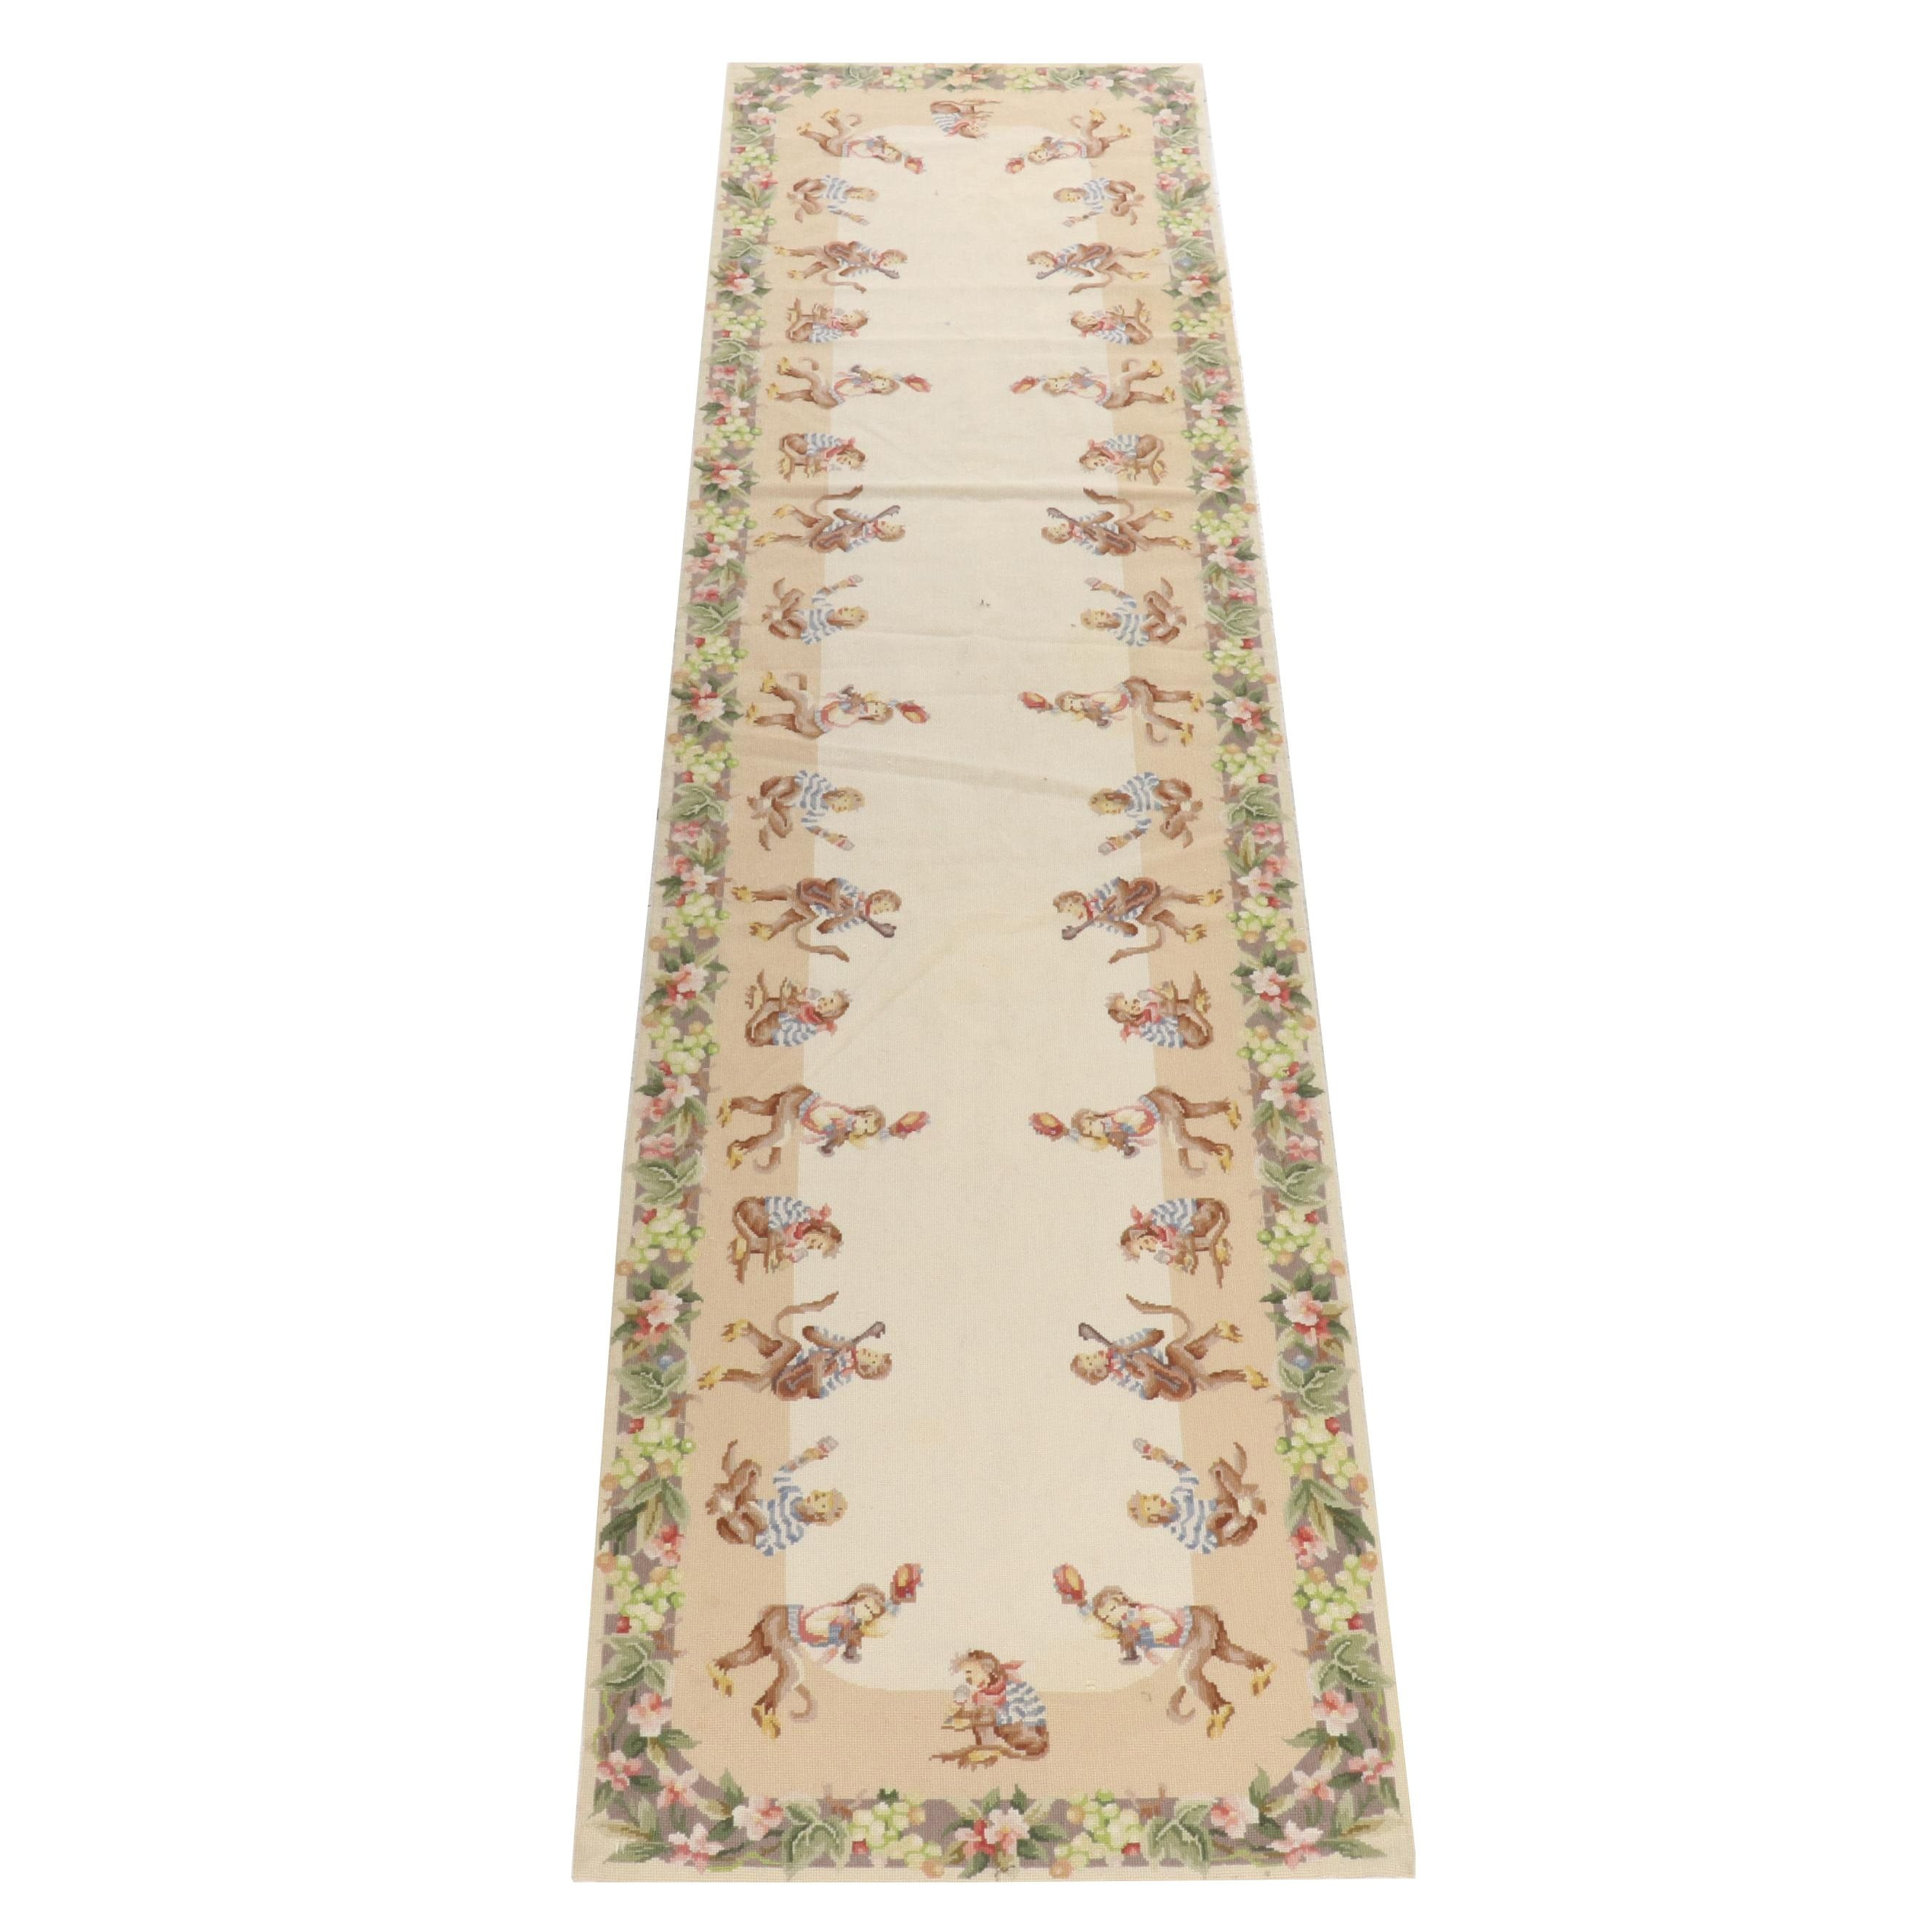 Handwoven Chinese Aubusson-Style Needlepoint Wool Carpet Runner